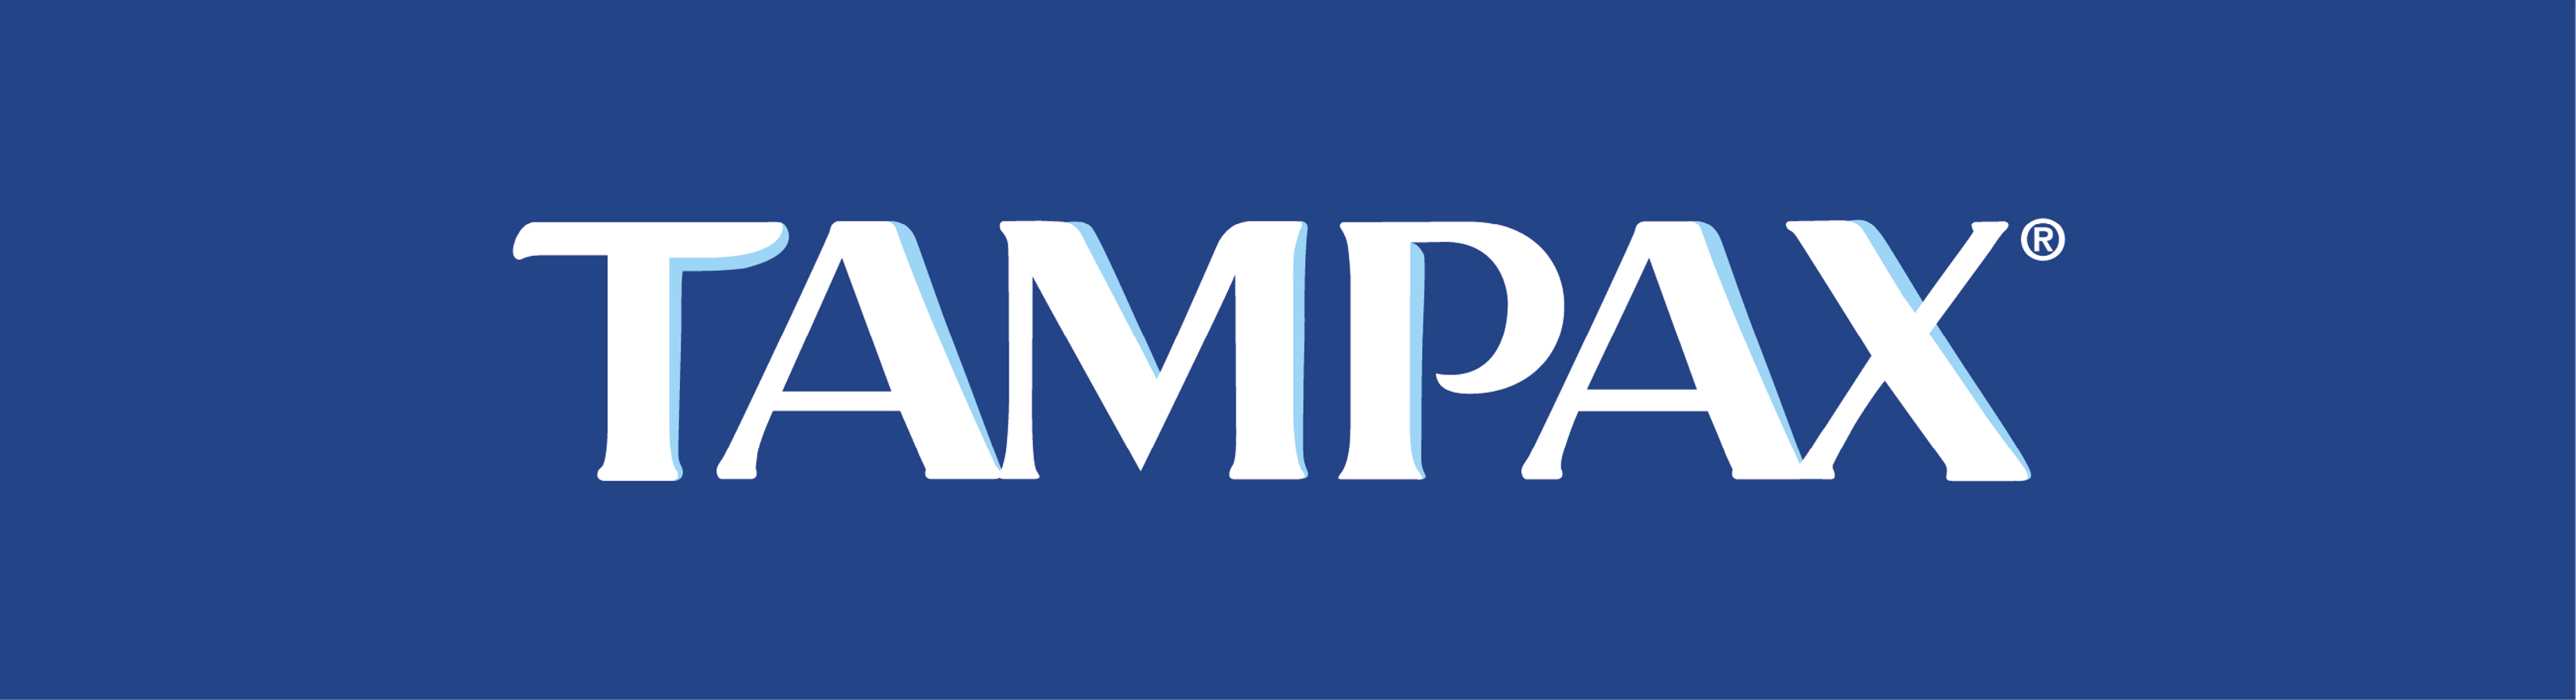 File:Tampax logo.jpg  Wikimedia Commons